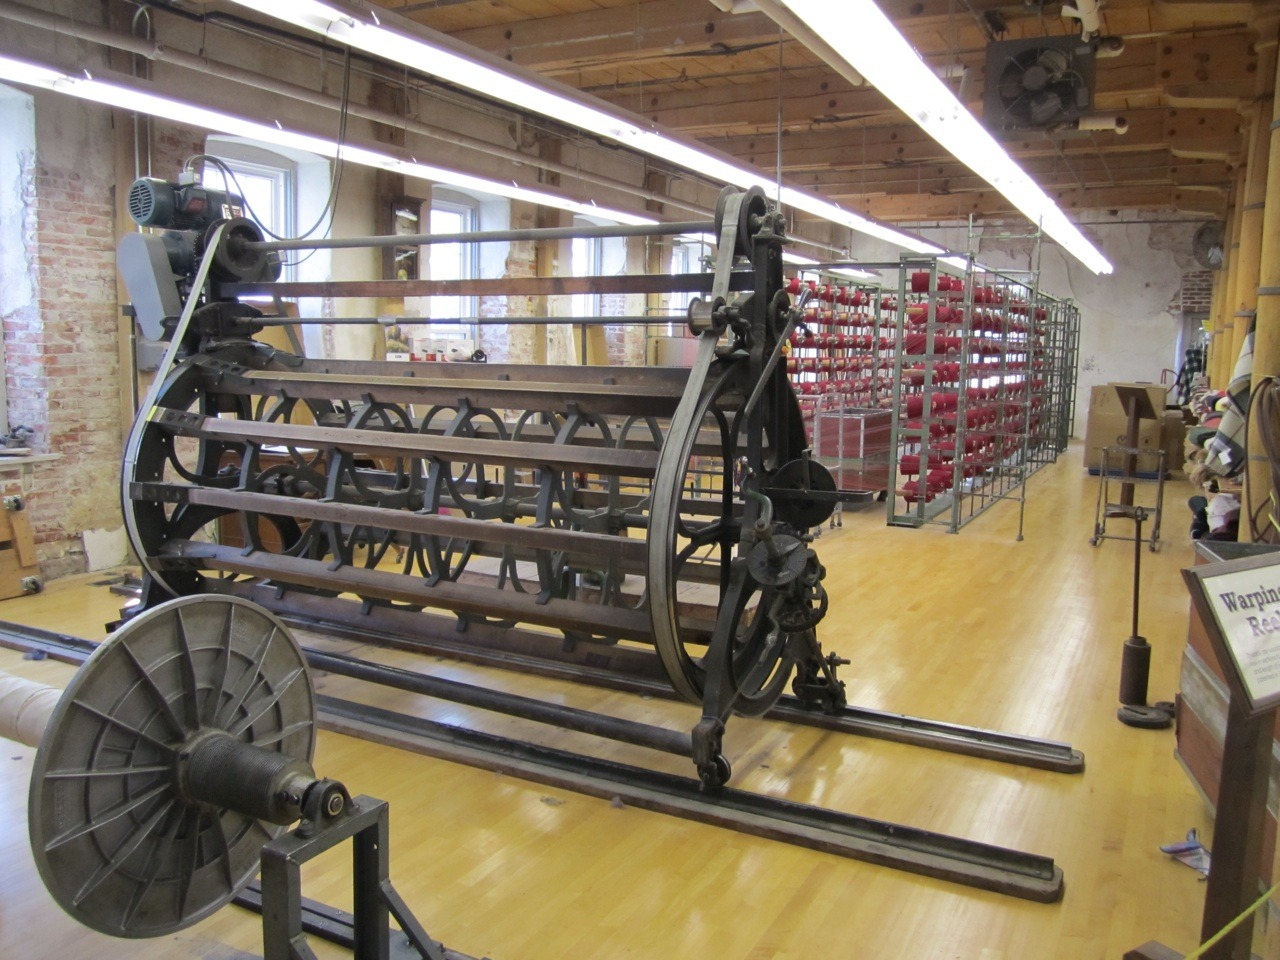 Inside The Amana Woolen Mill. Over 280 Bobbins Of Yarn Feed Into The Loom.